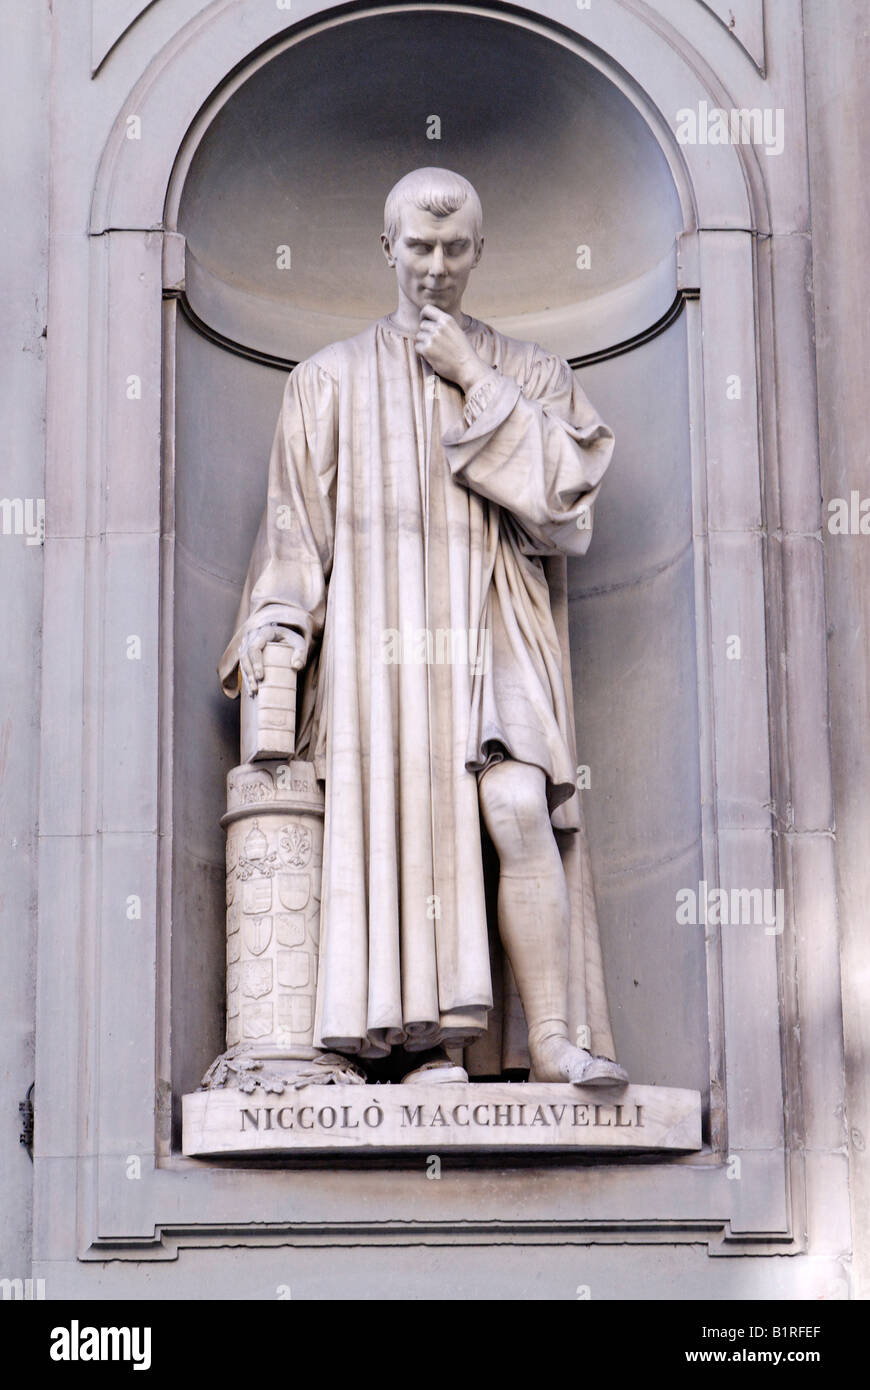 niccolo machiavelli stock photos niccolo machiavelli stock statue of niccolo machiavelli renaissance at the uffizi in florence unesco world heritage